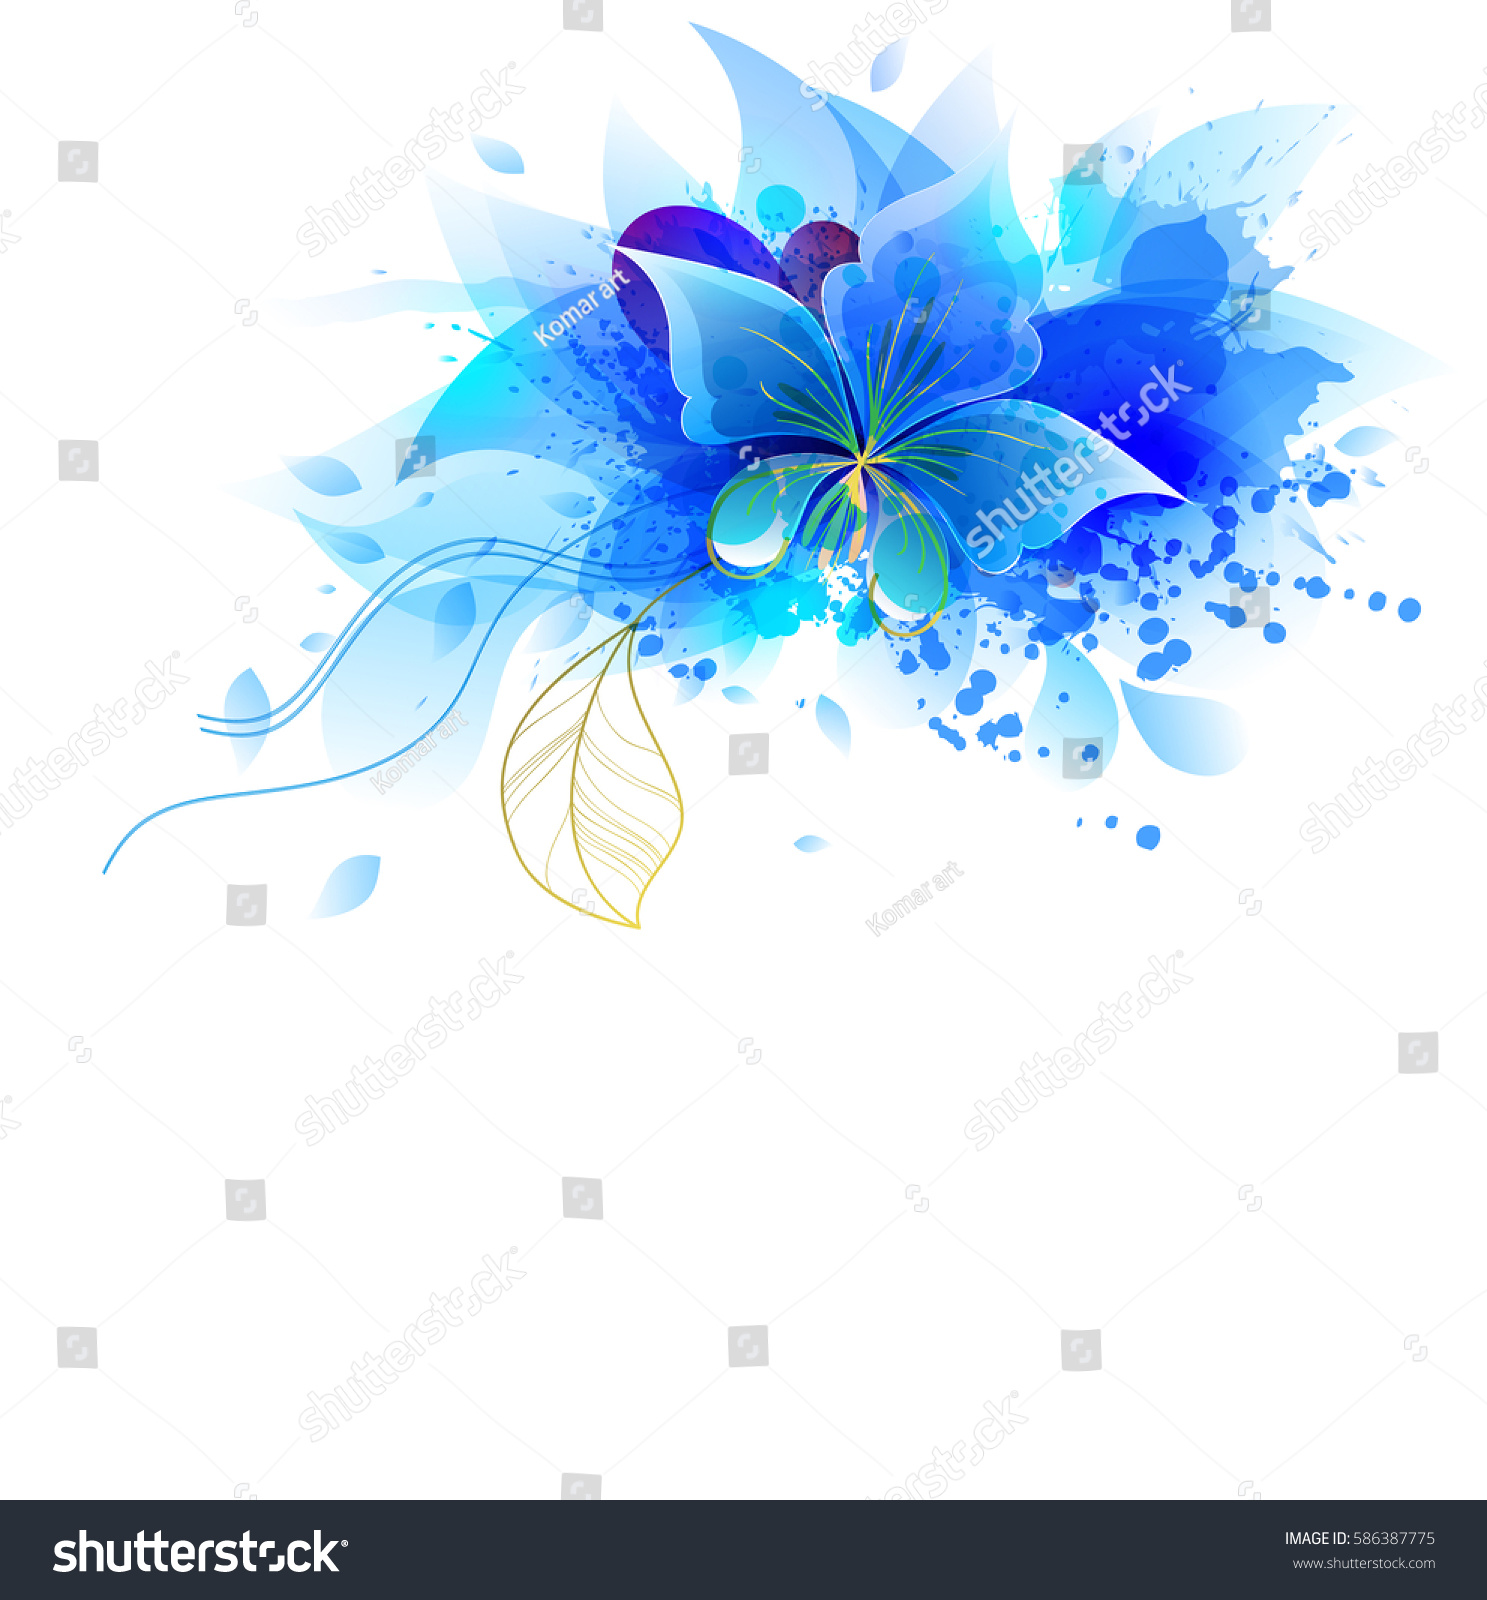 Watercolor vector background with flowers abstract floral elements watercolor vector background with flowers abstract floral elements ez canvas izmirmasajfo